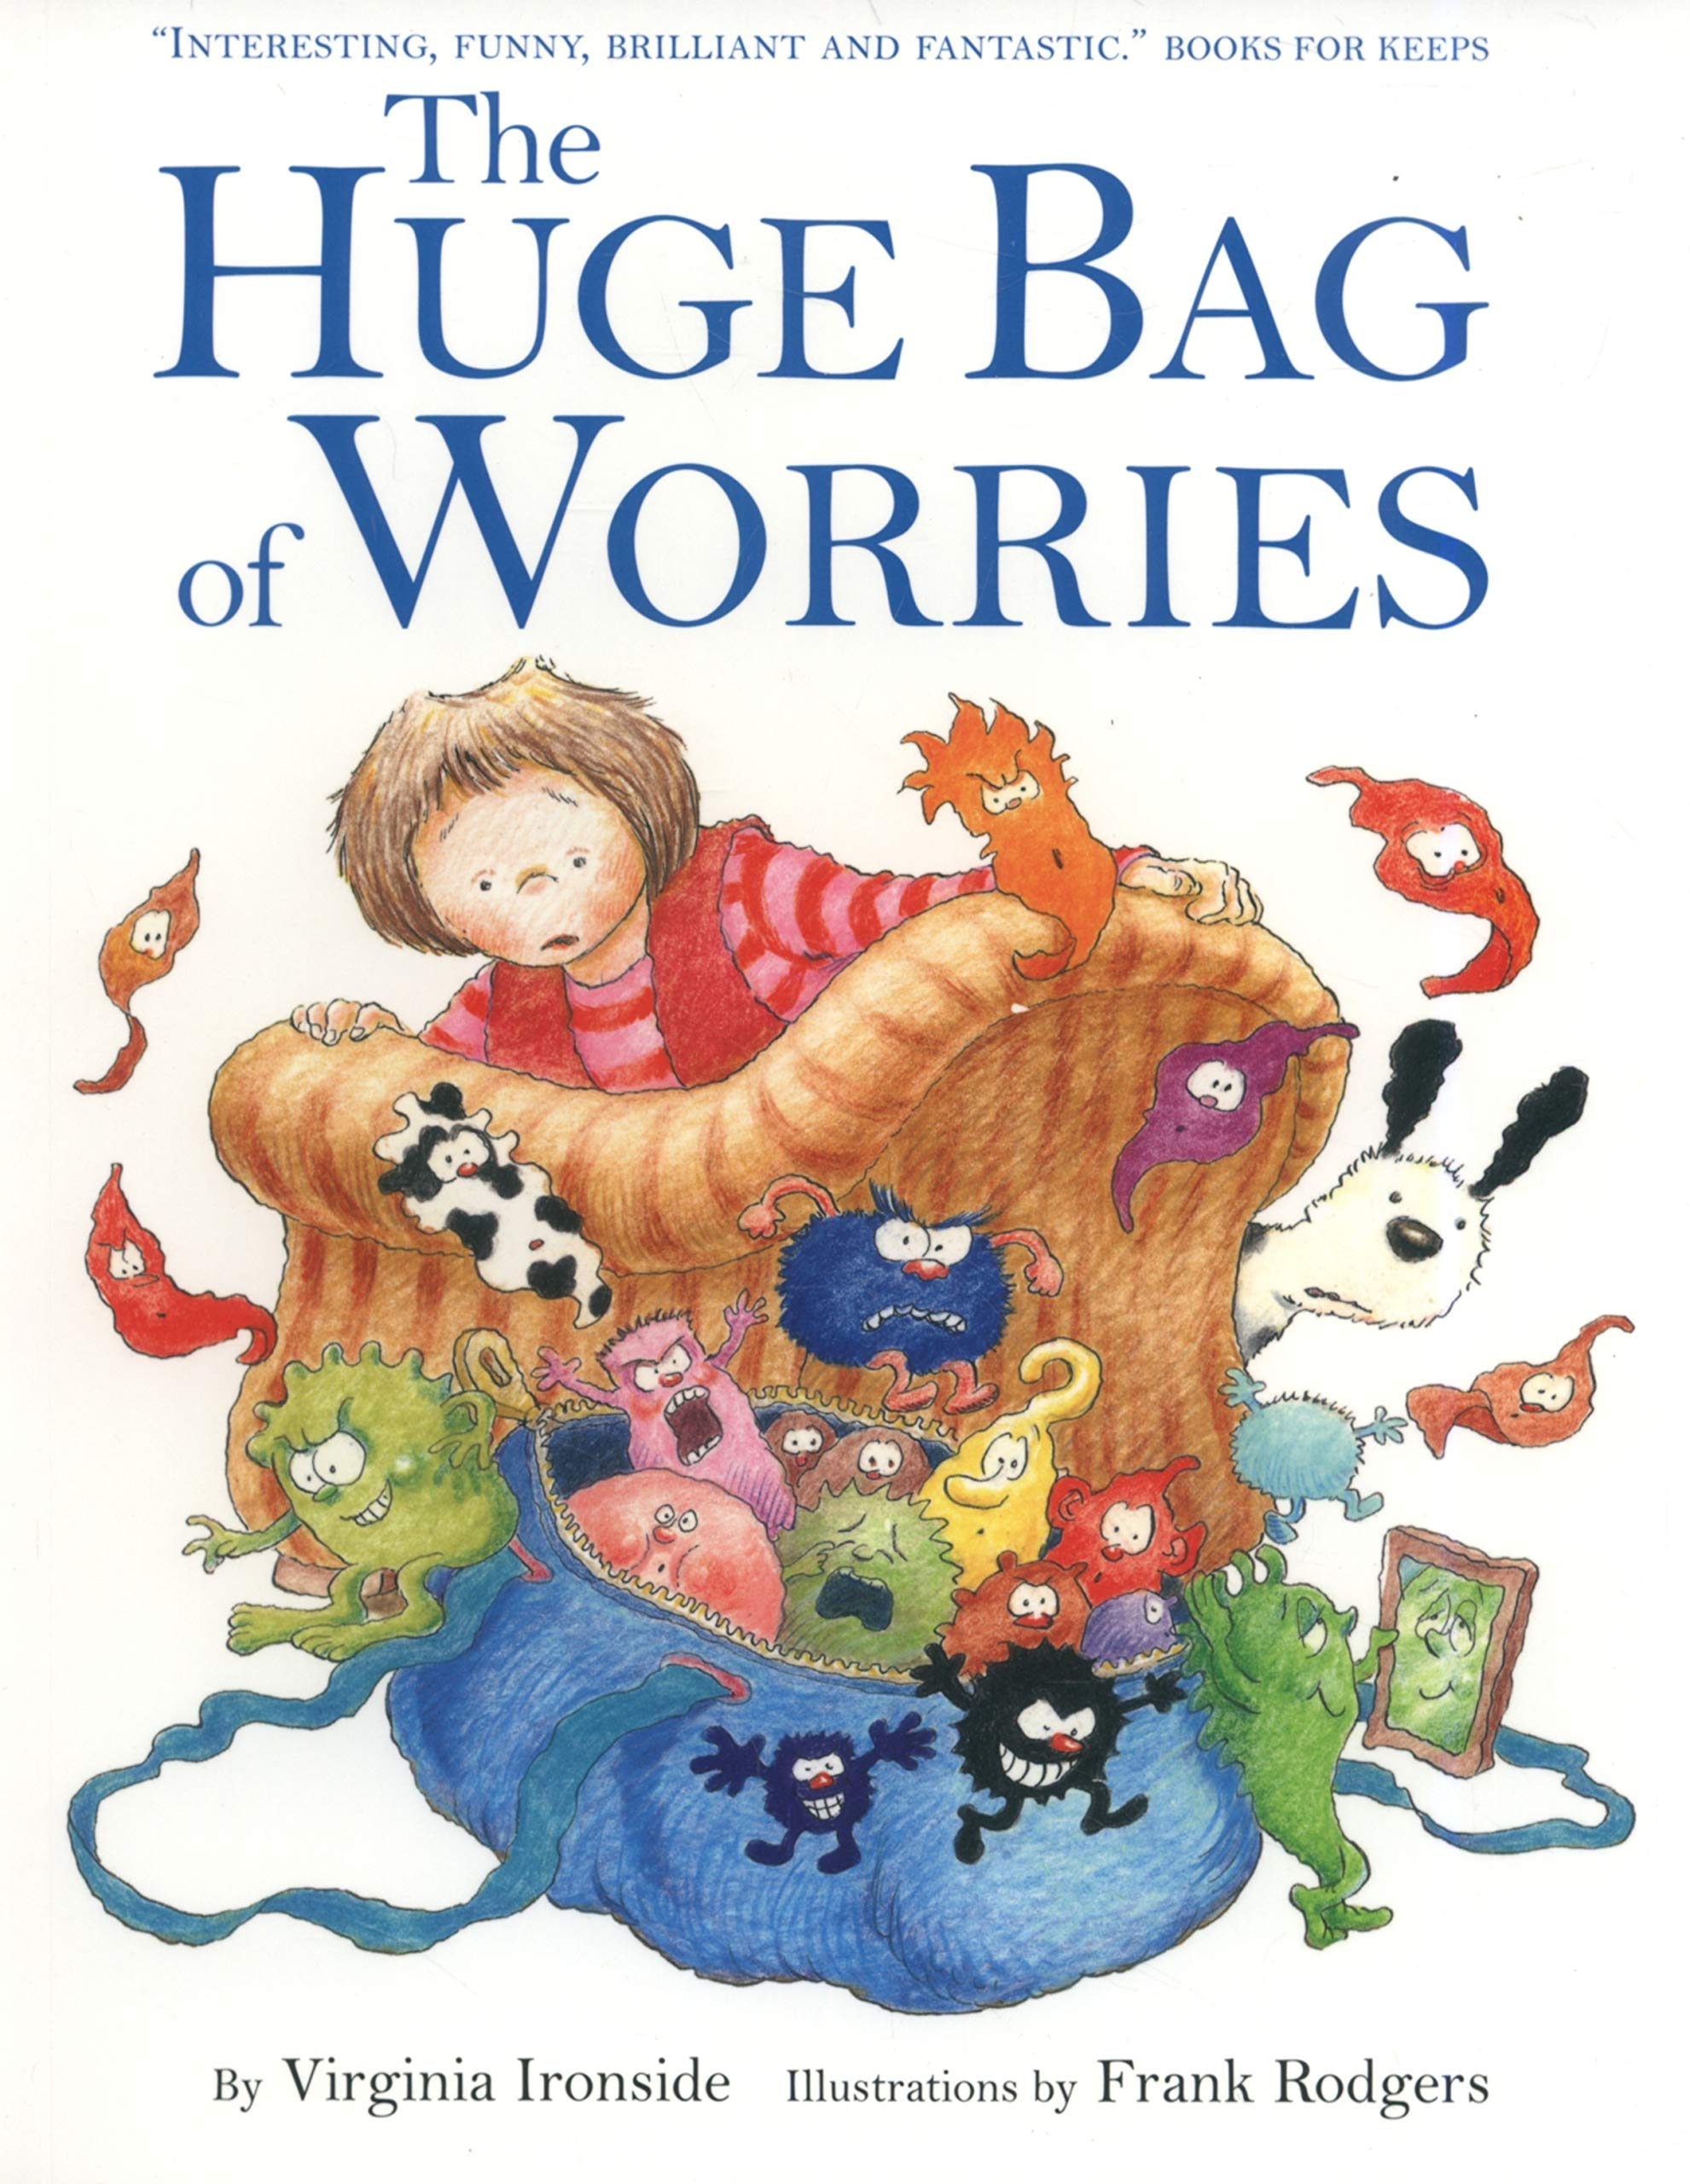 The Huge Bag of Worries: Amazon.co.uk: Ironside, Virginia, Rodgers, Frank:  9780340903179: Books